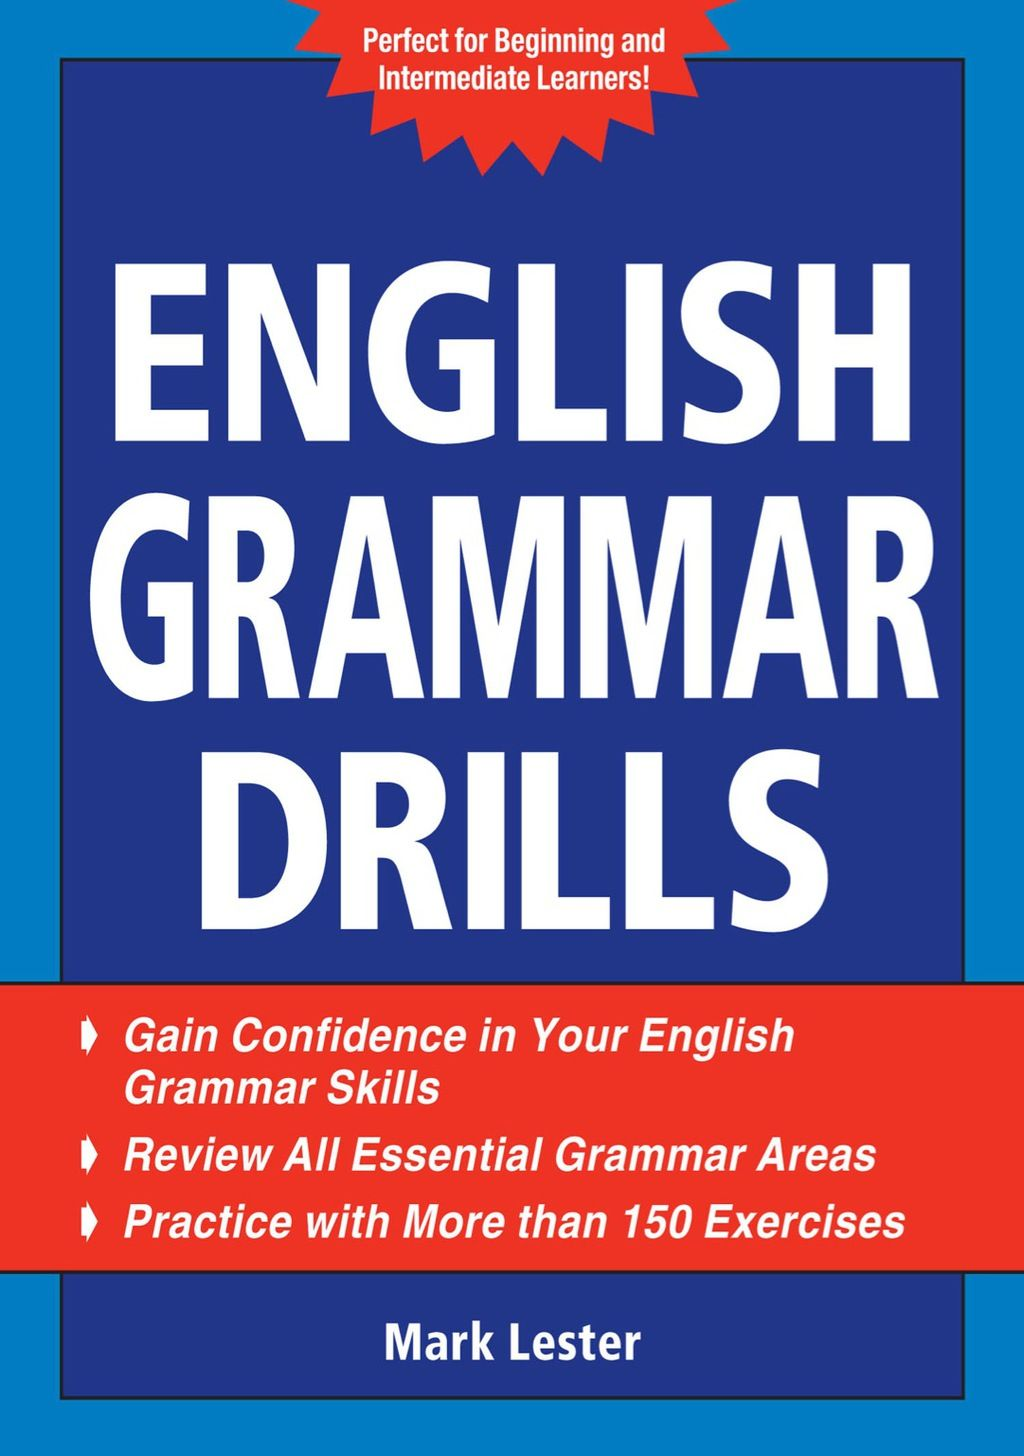 English Grammar Drills Ebook